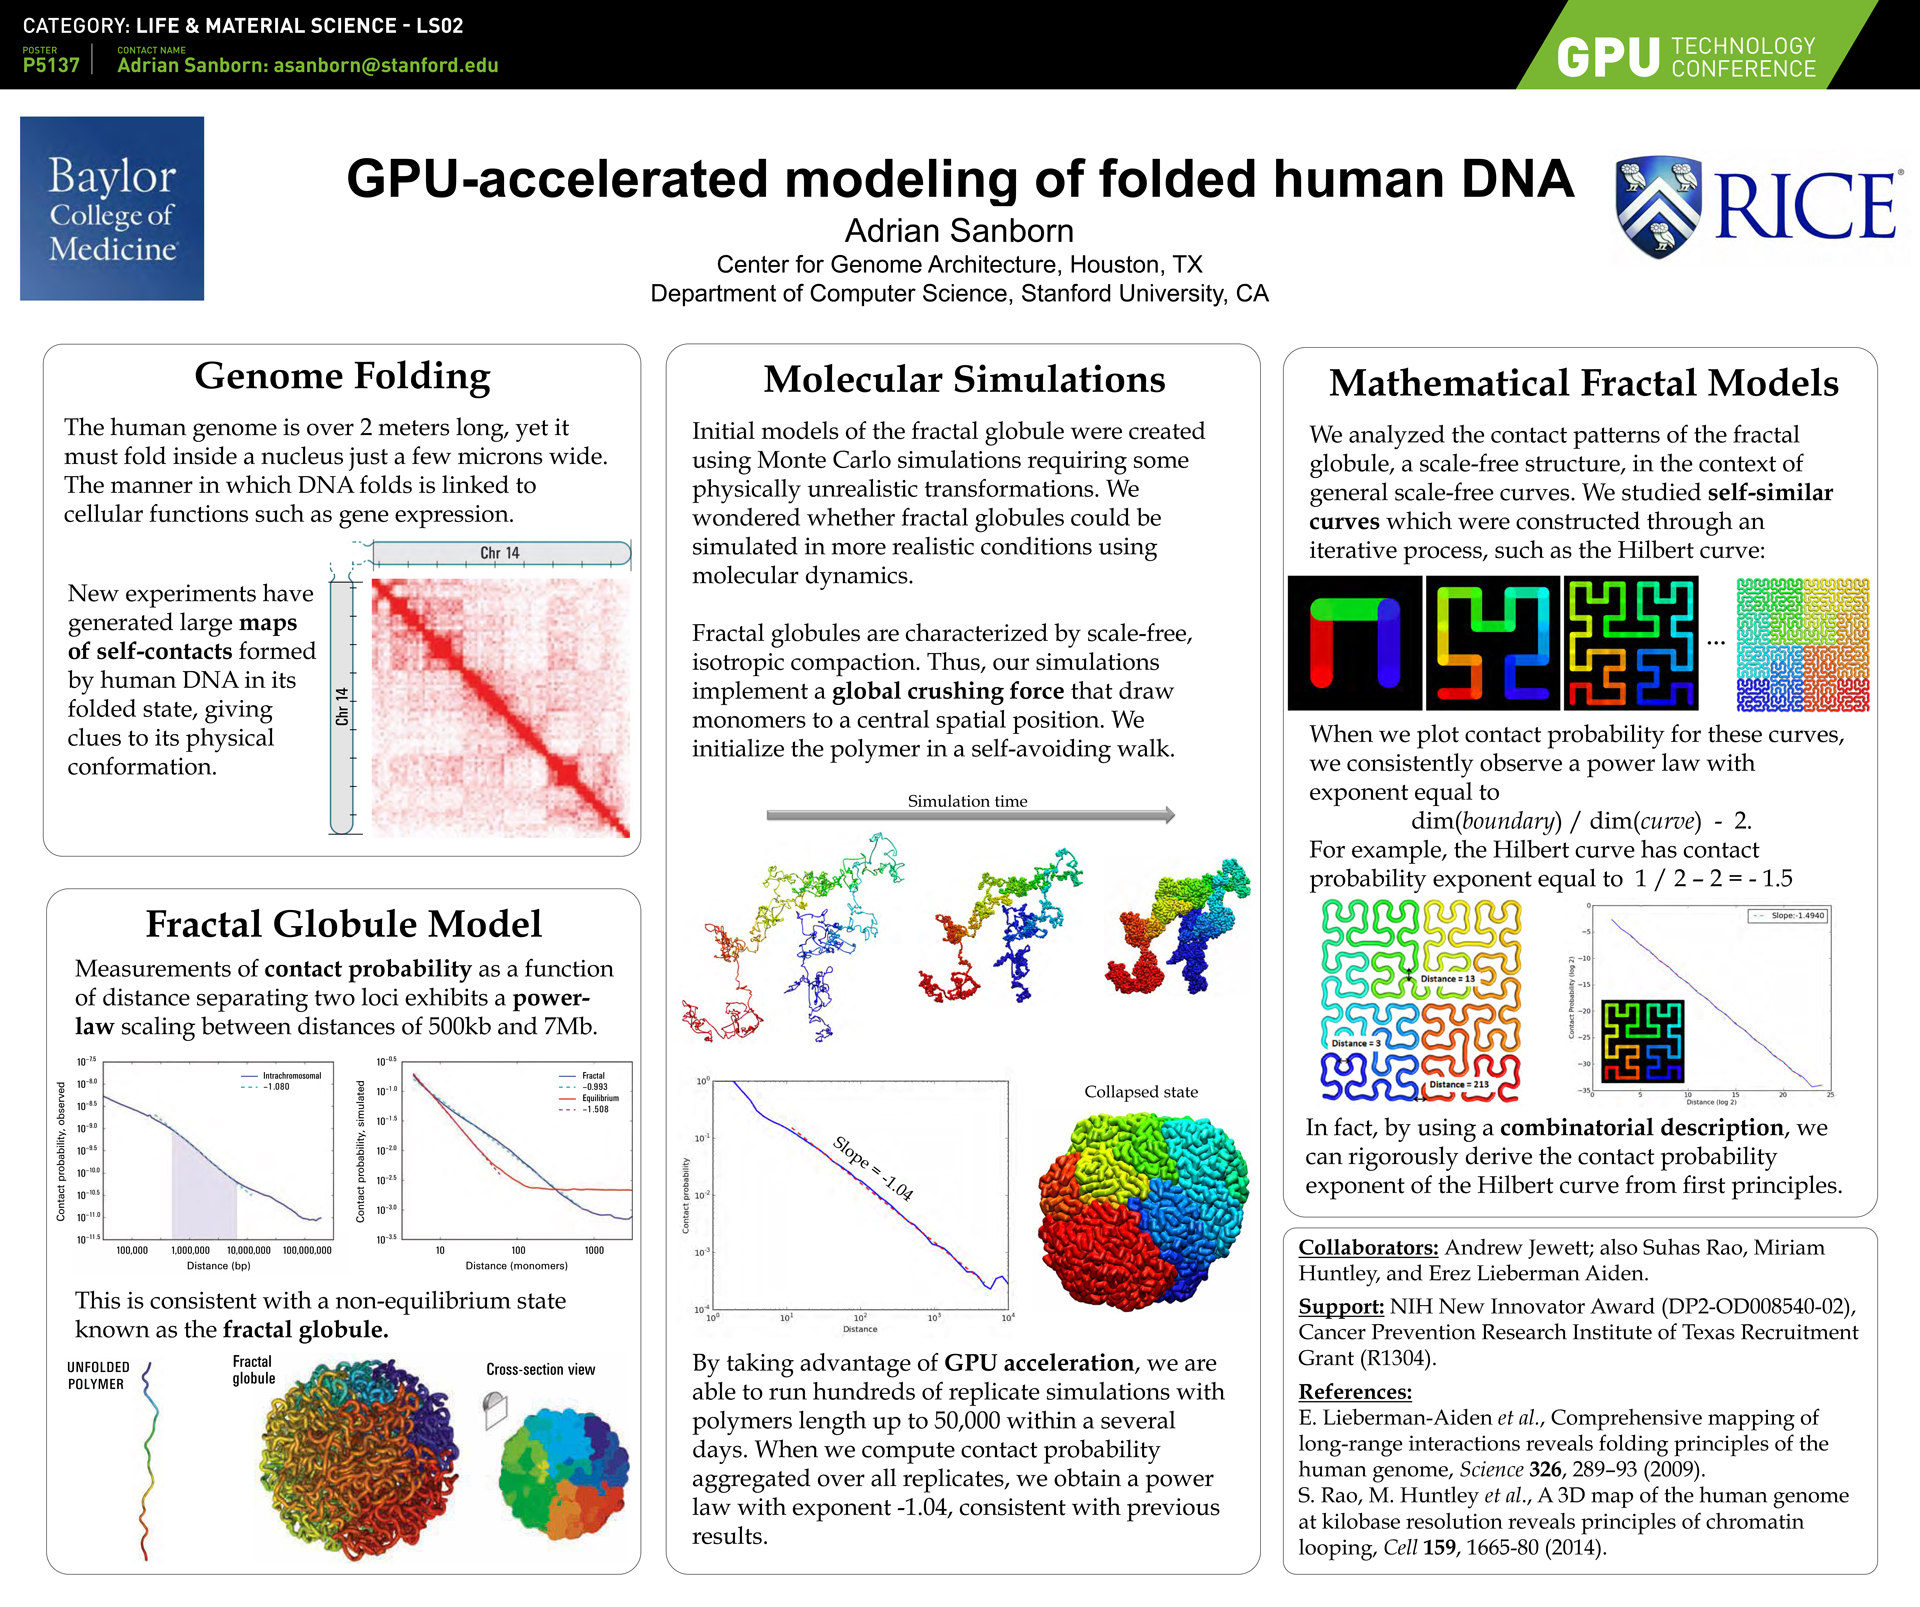 Life & Material Sciences Conference Posters | GTC 2017 Molecular Clock Human